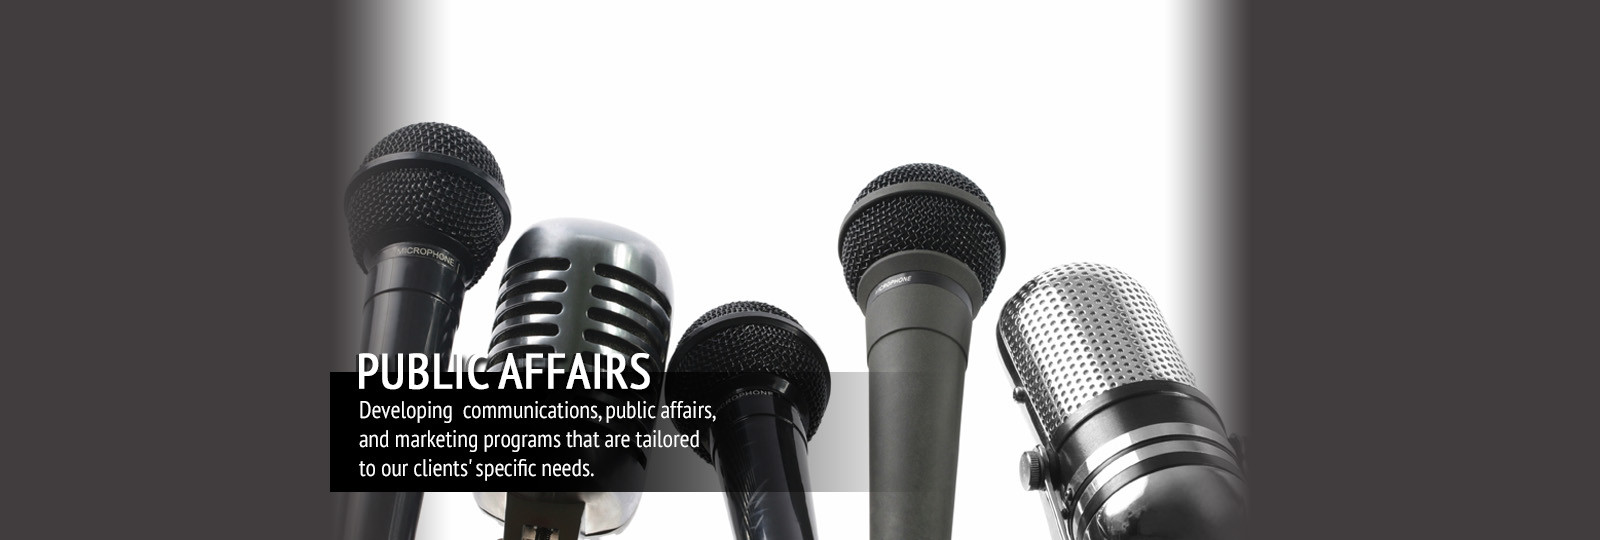 Slide 4 – Public Affairs